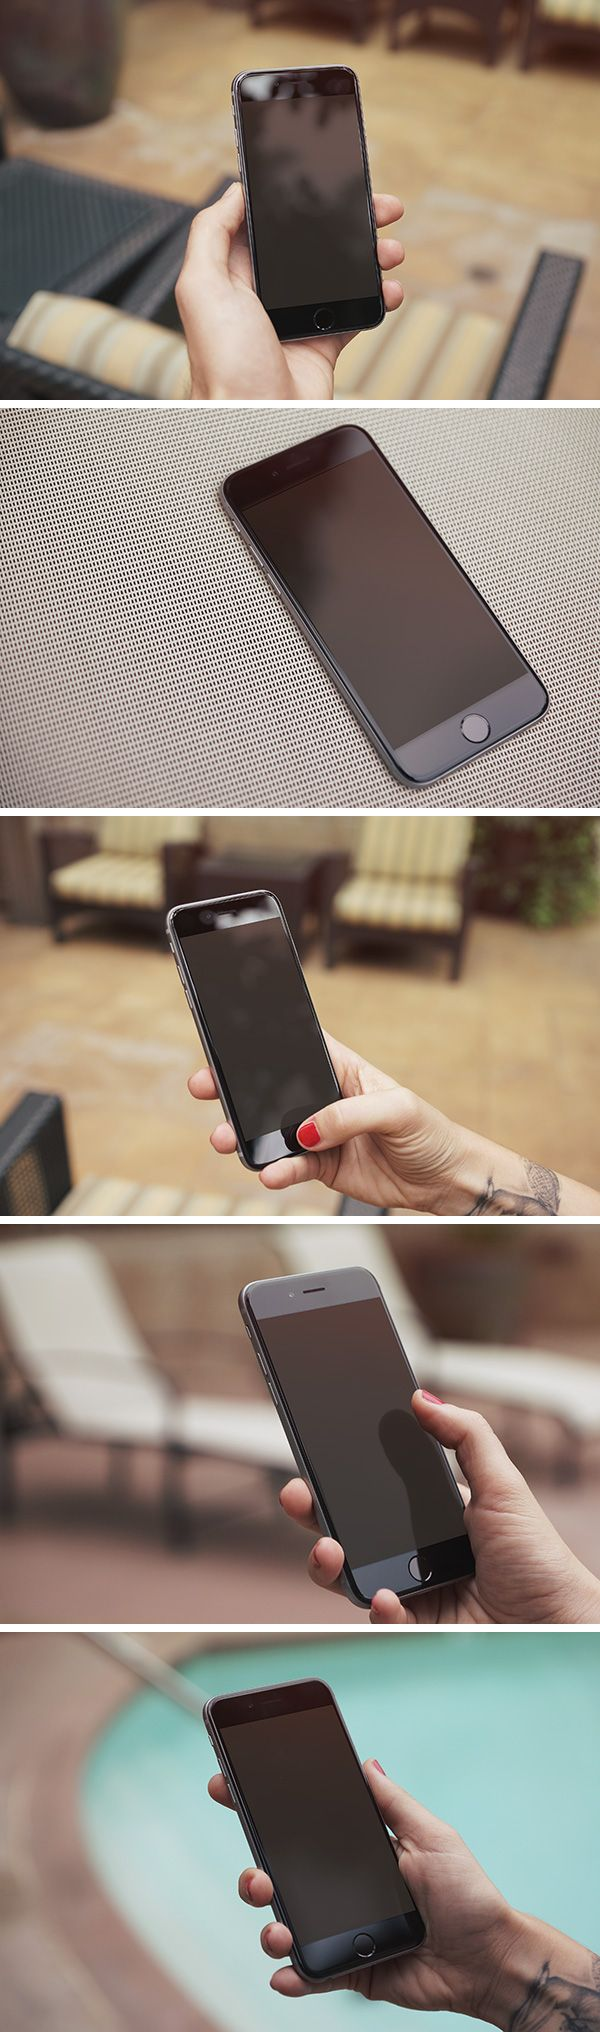 The special resource of the day is a nice collection of high-quality iPhone 6 photo mock-ups that you can use...